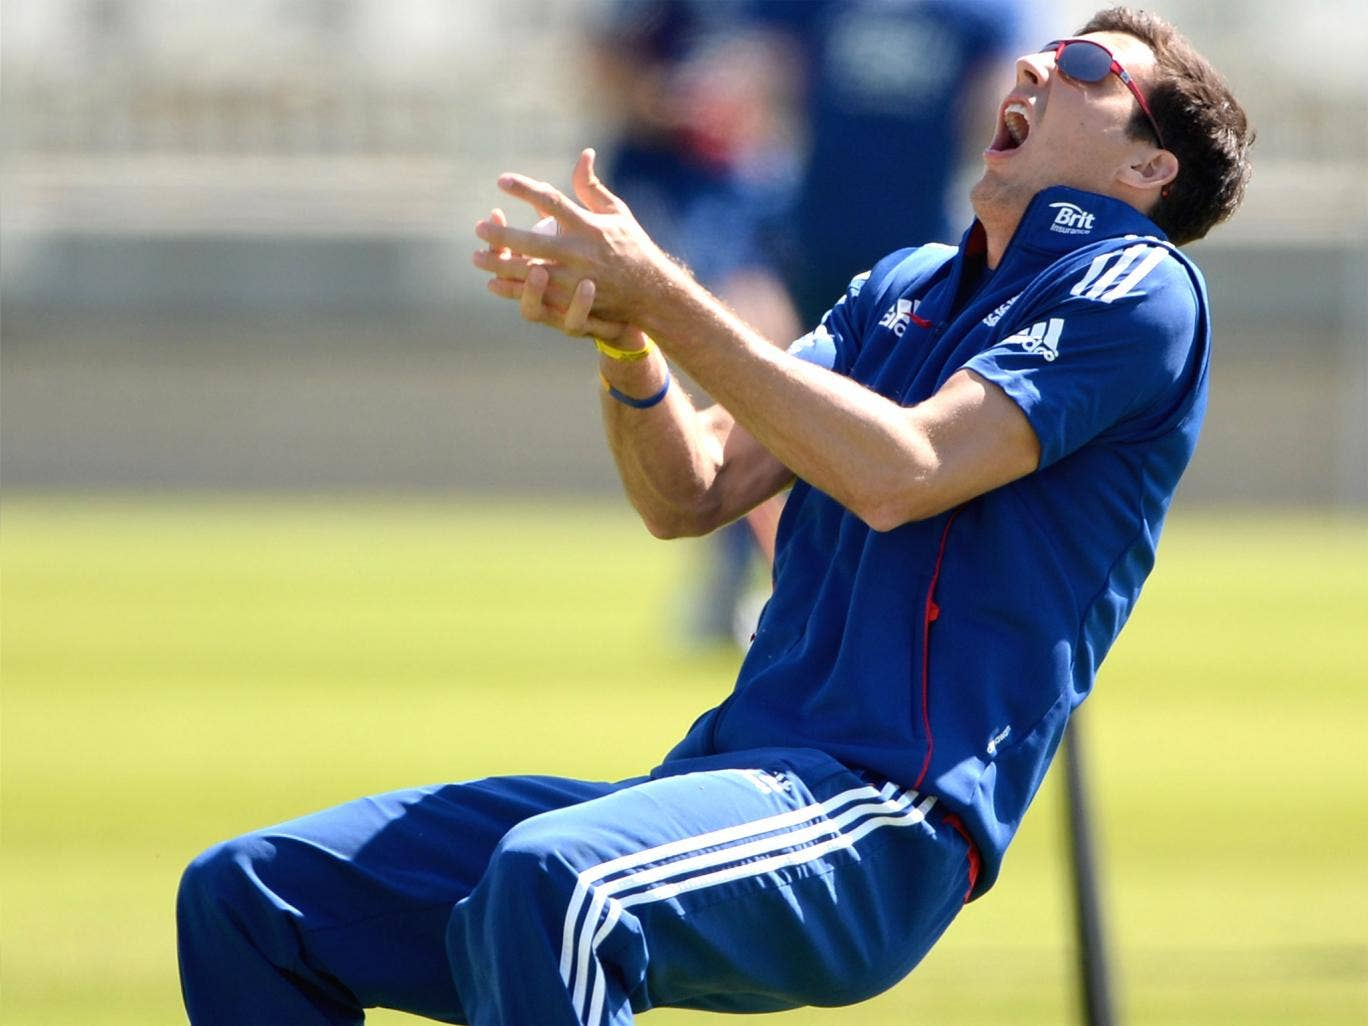 Steven Finn was back in training with England at Trent Bridge